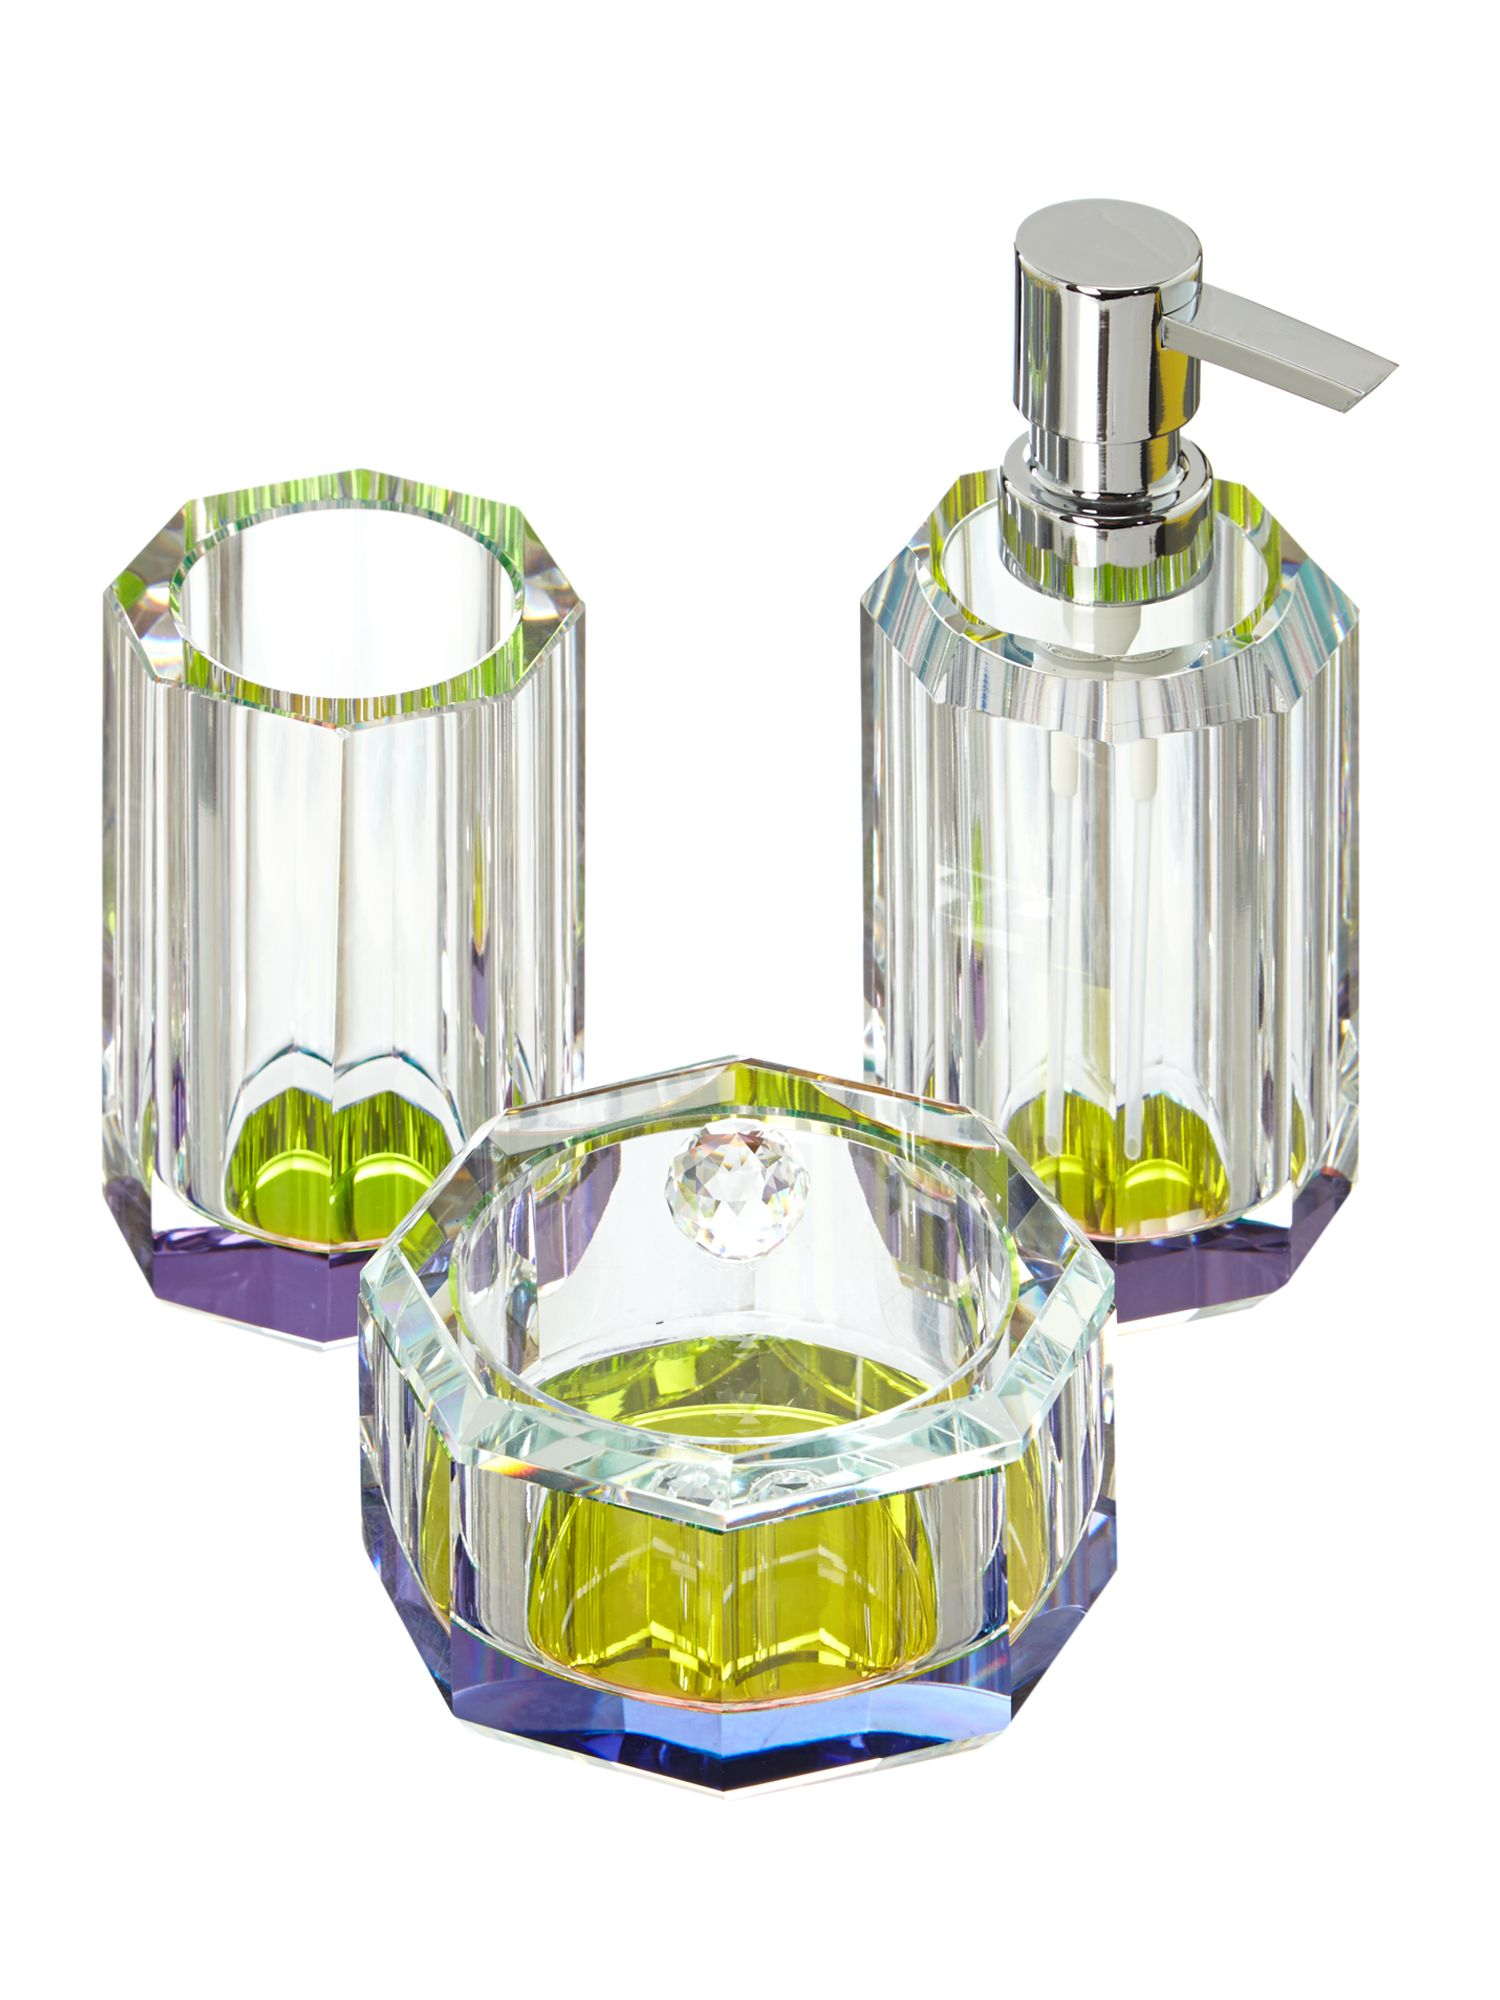 Rainbow prism glass accessories